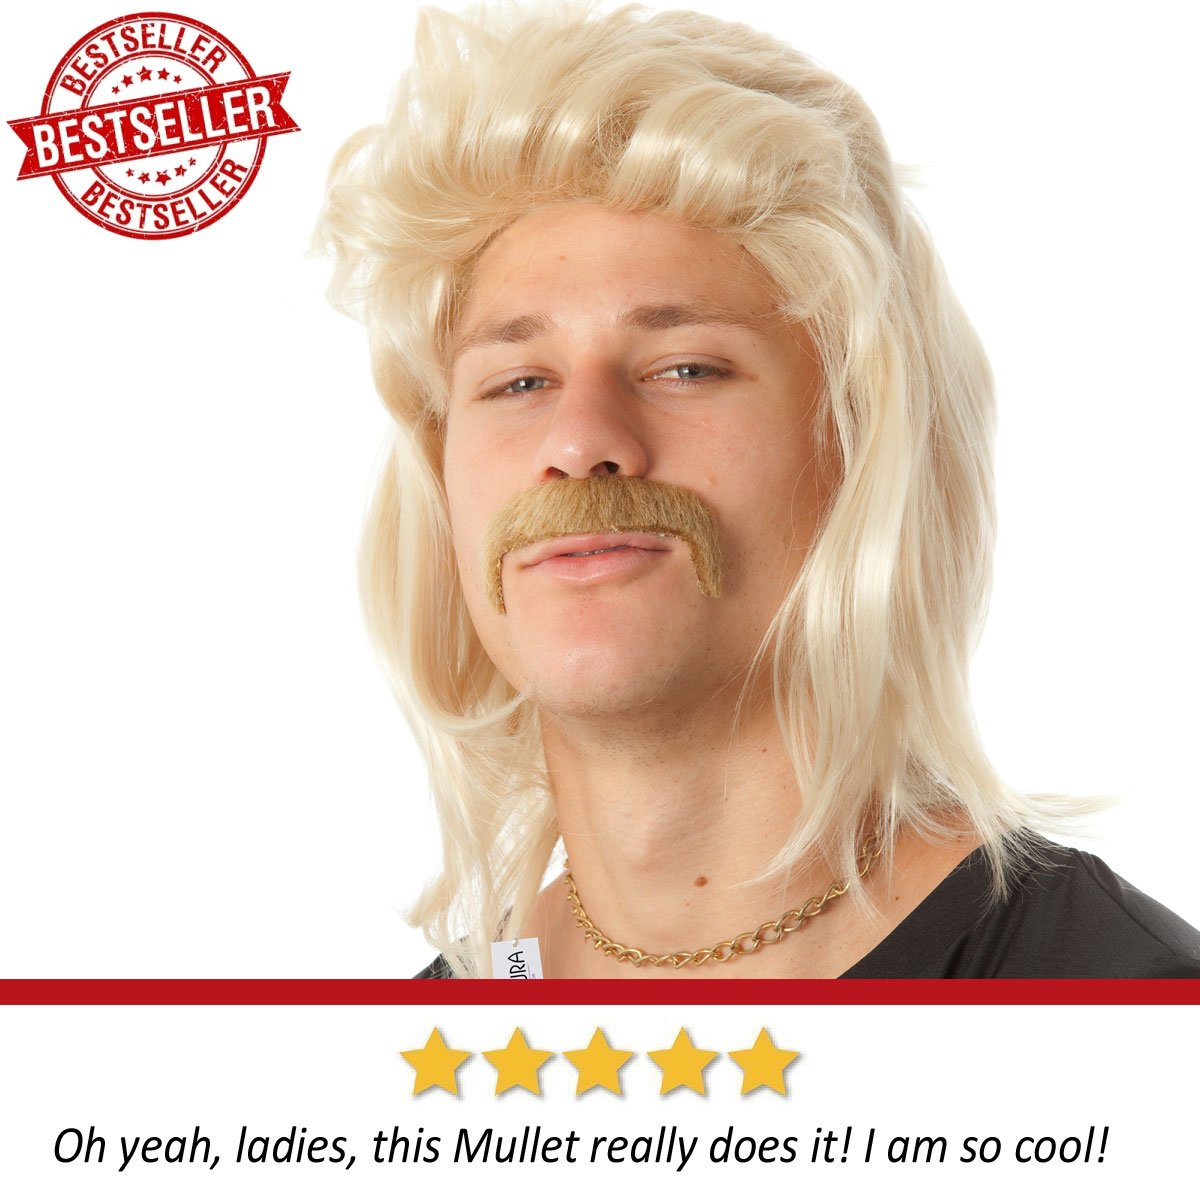 ALLAURA Blonde Mullet Wig Mustache - Hillbilly White Trash Redneck Costume 80s Mens by ALLAURA (Image #3)